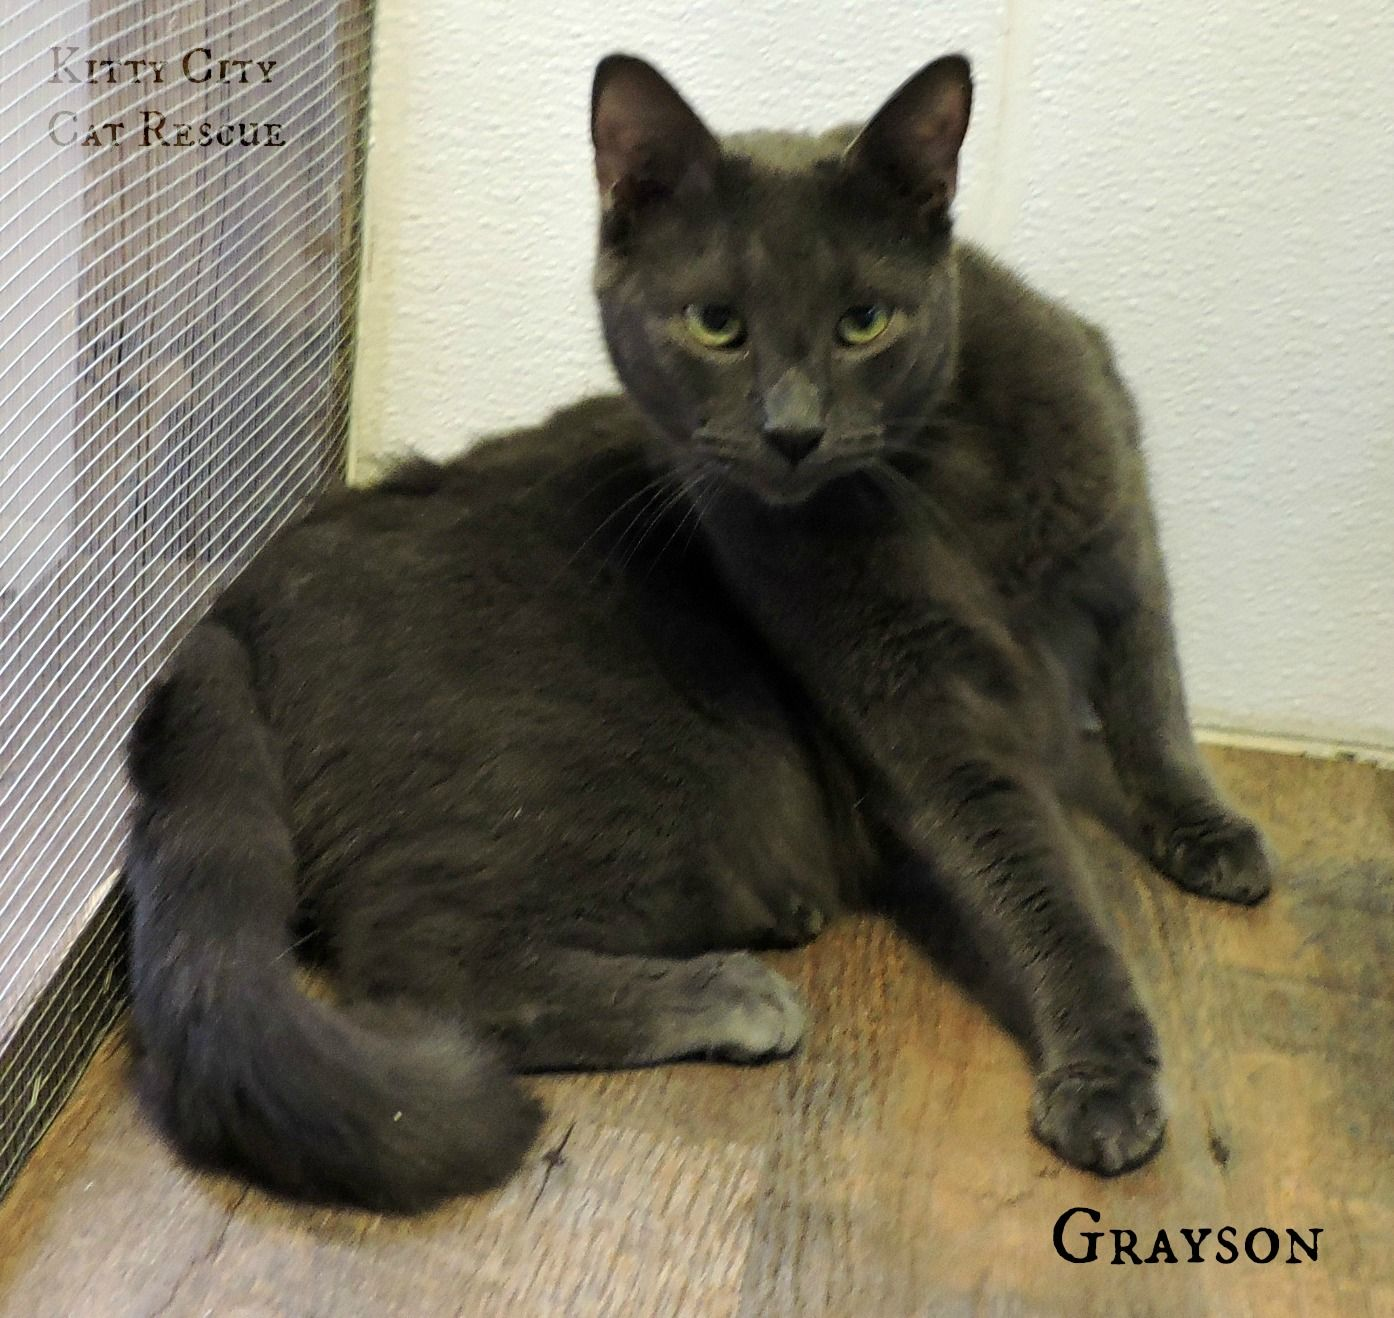 GRAYSON Kitty City Cat Rescue Macon GA